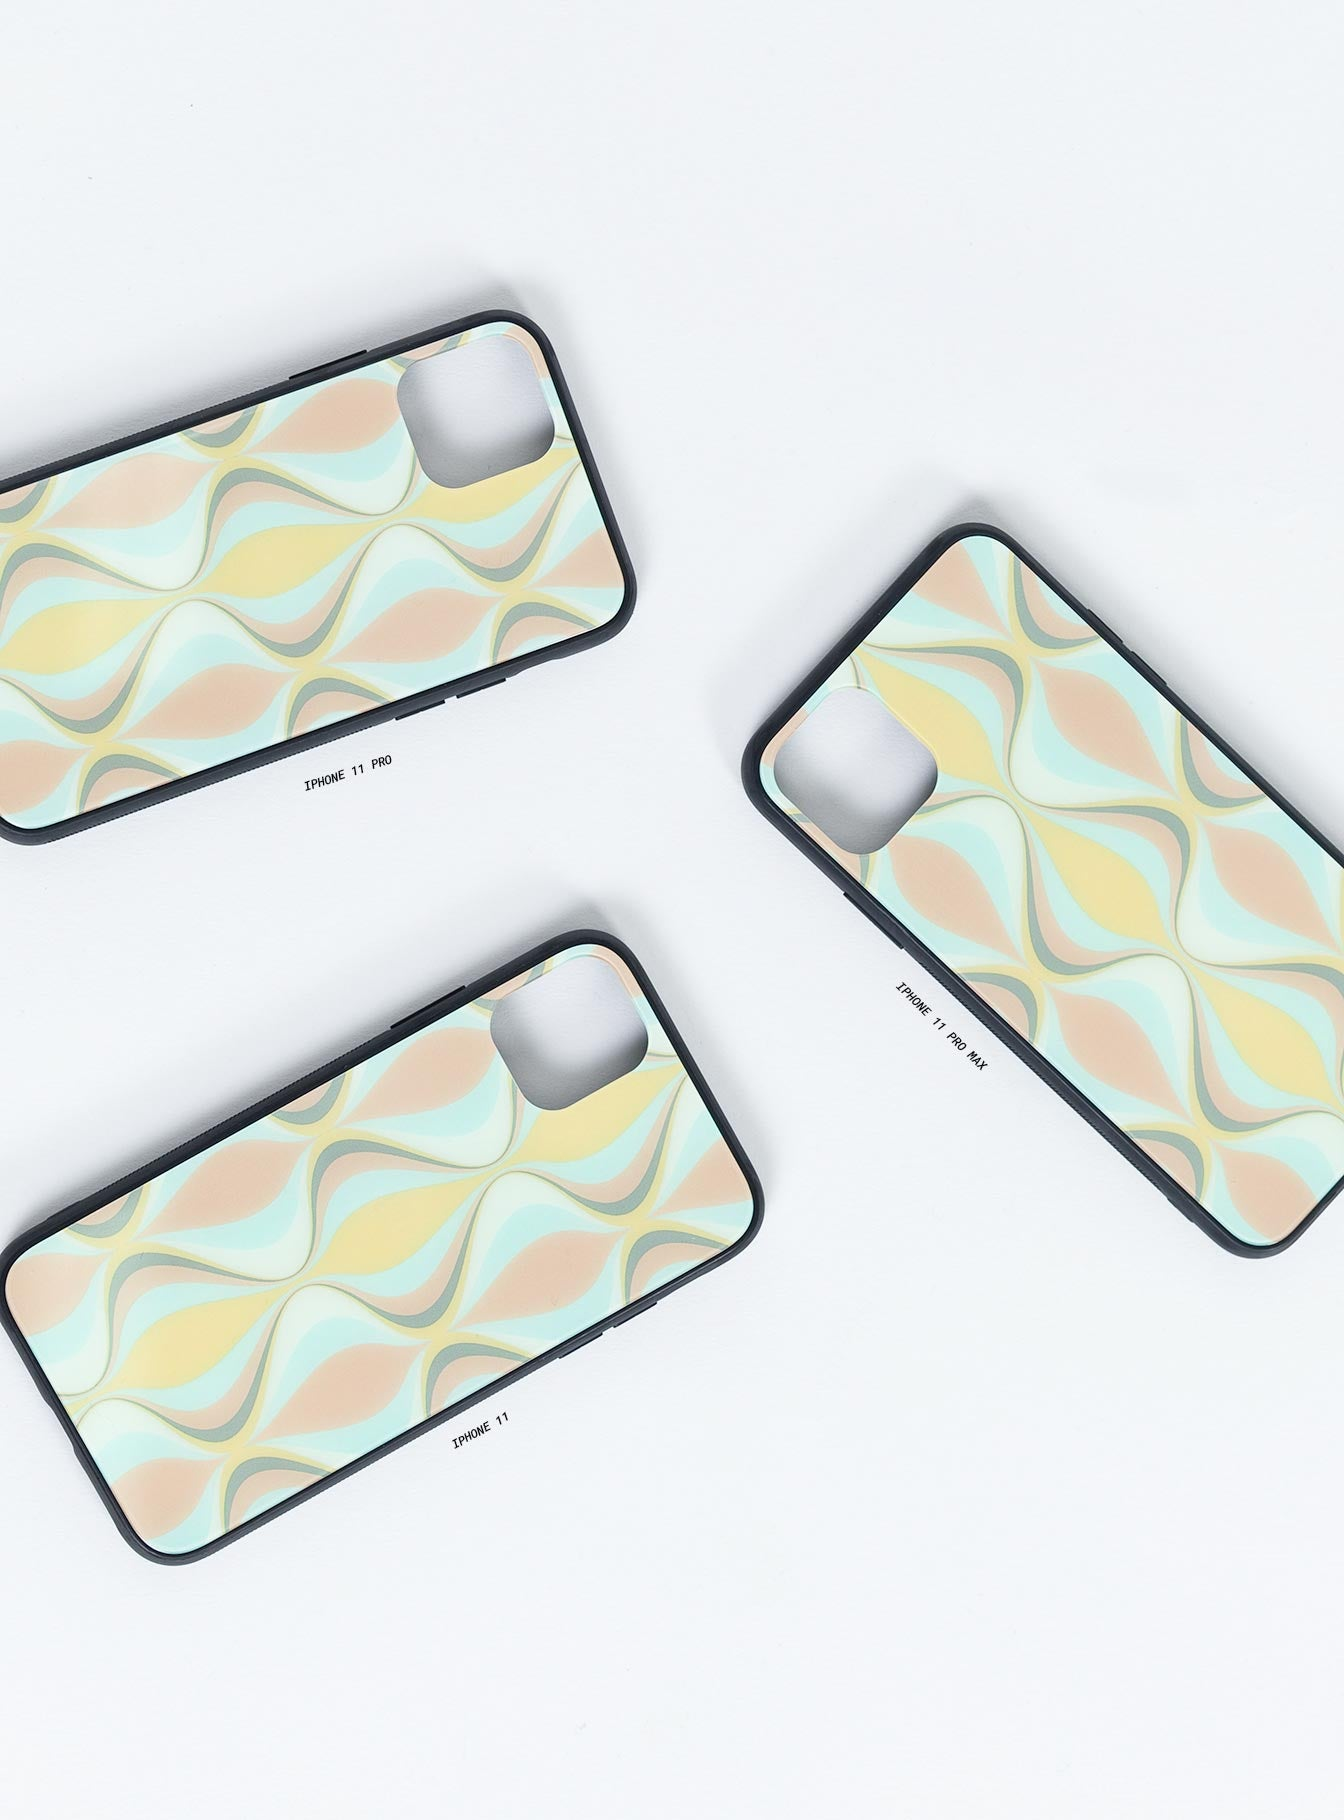 Hypnotise iPhone Case